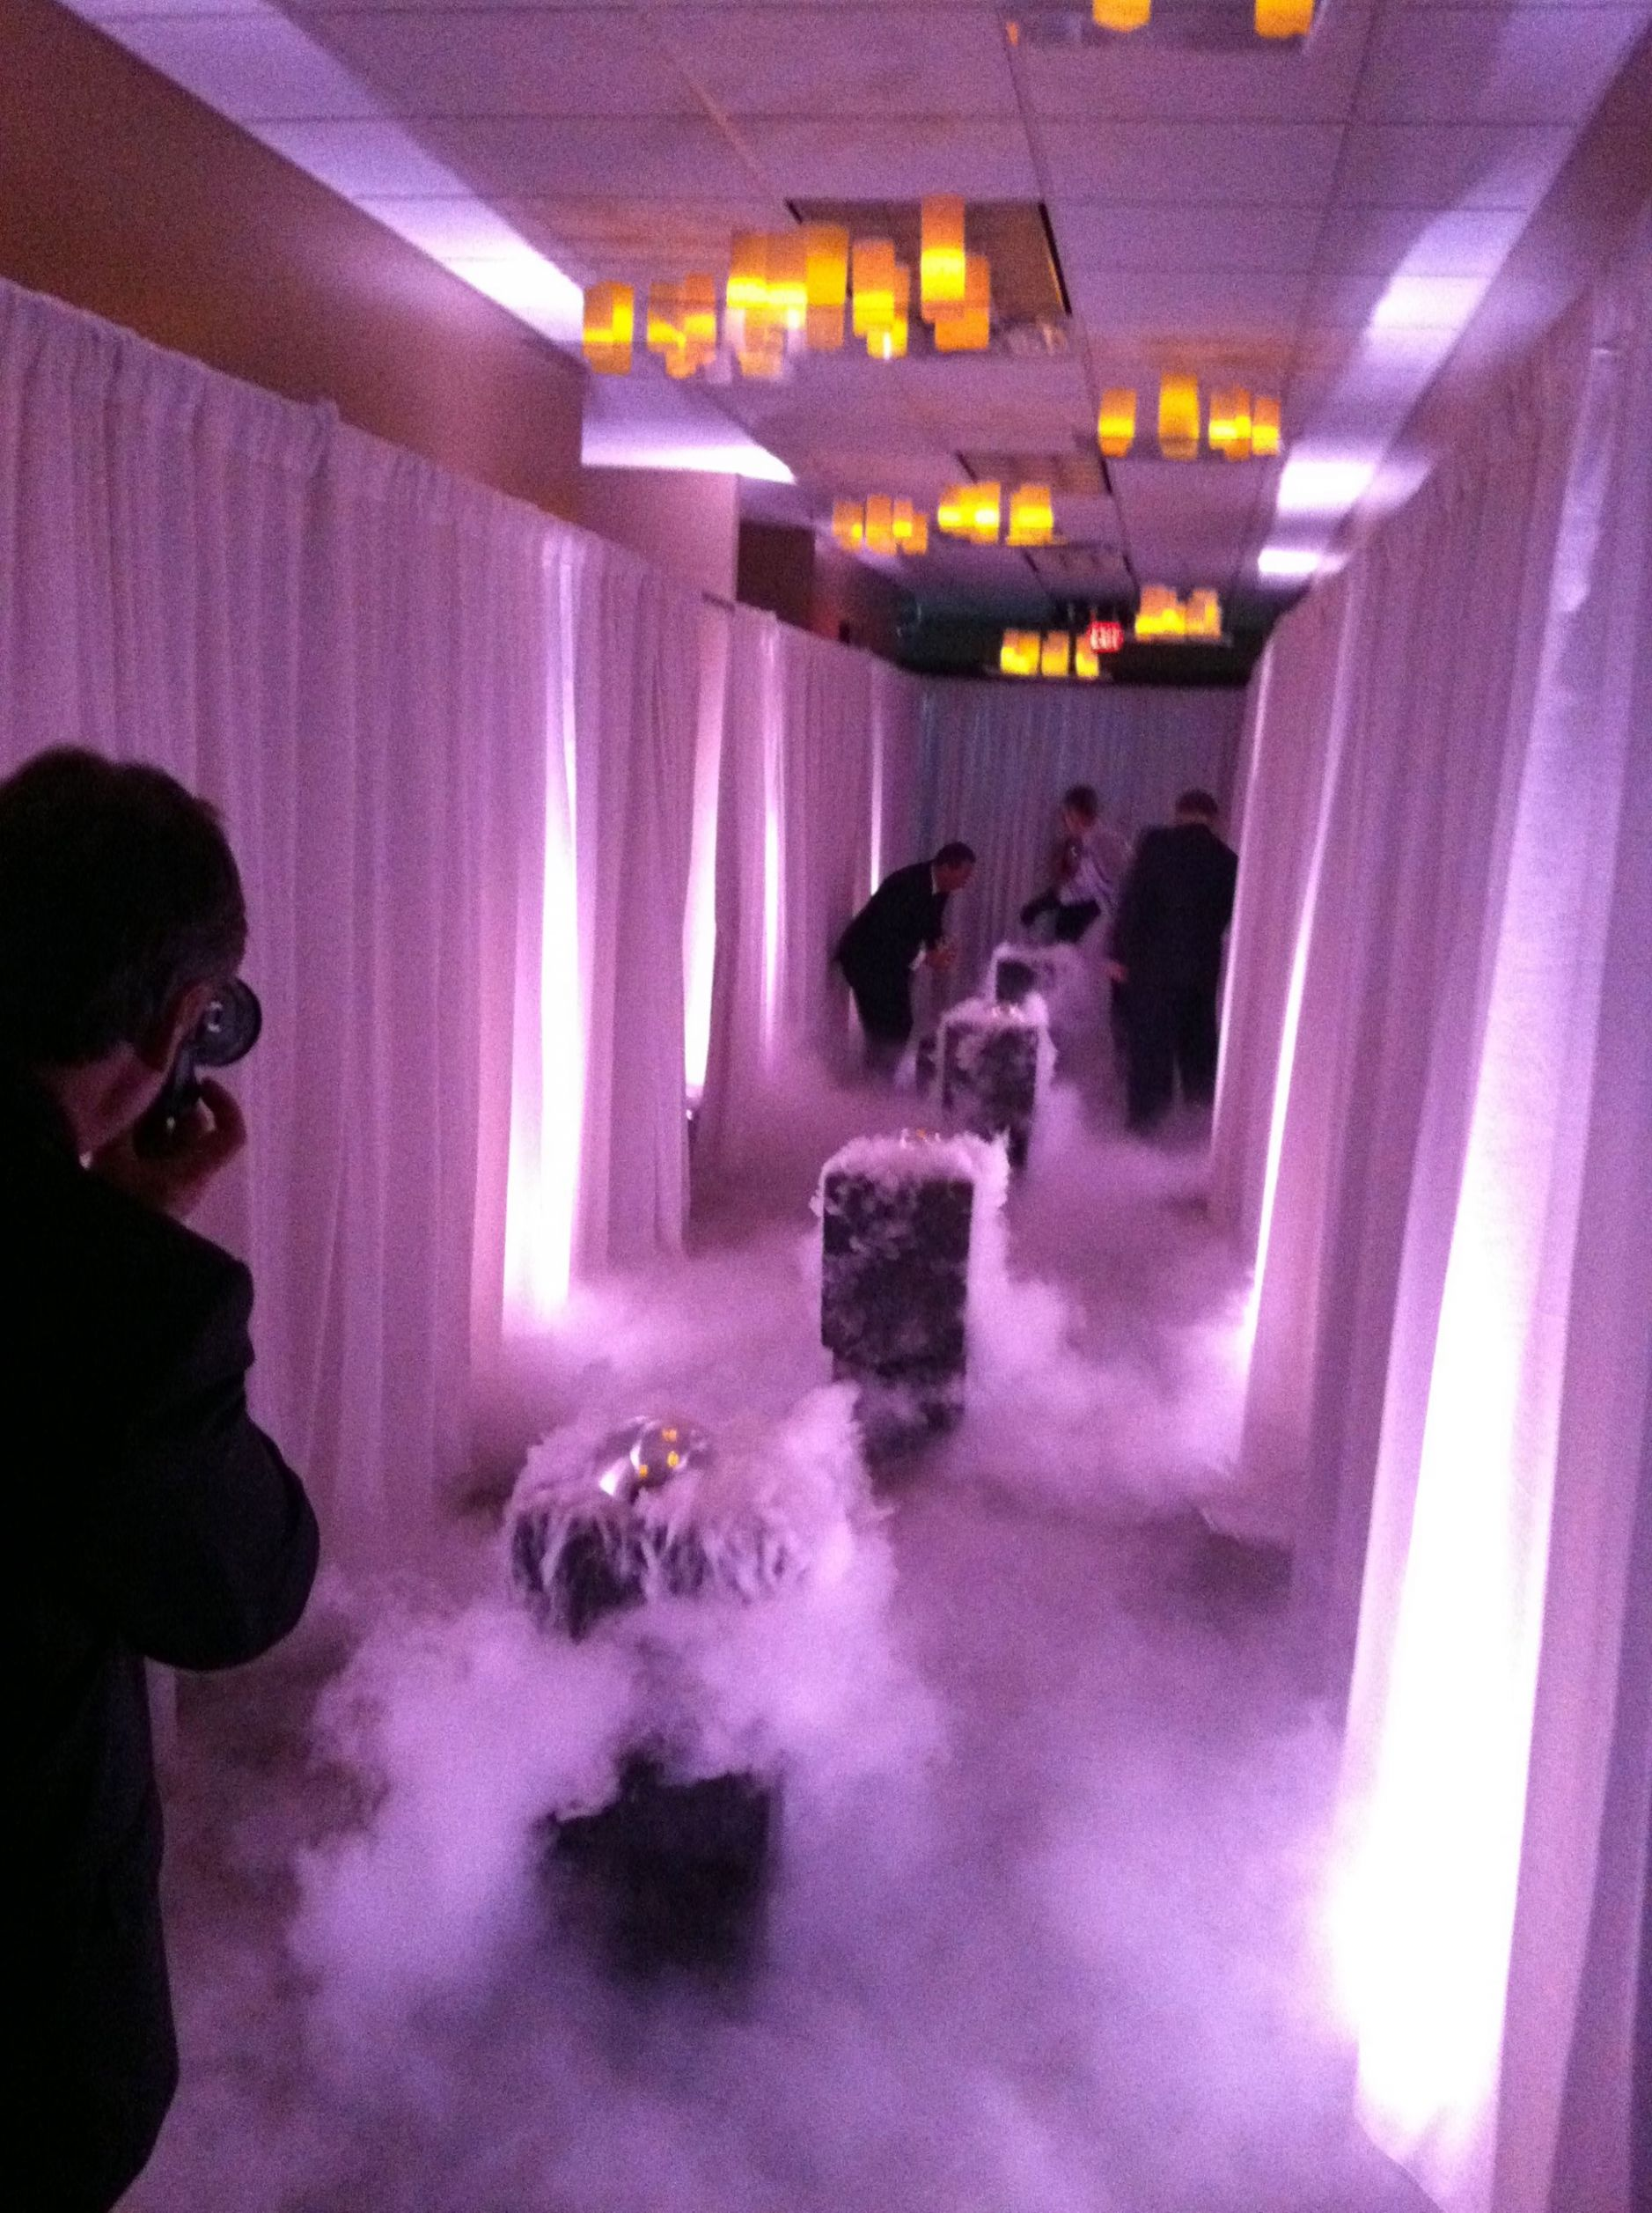 Use dry ice to create the smoke. Very cool for s party or wedding ..